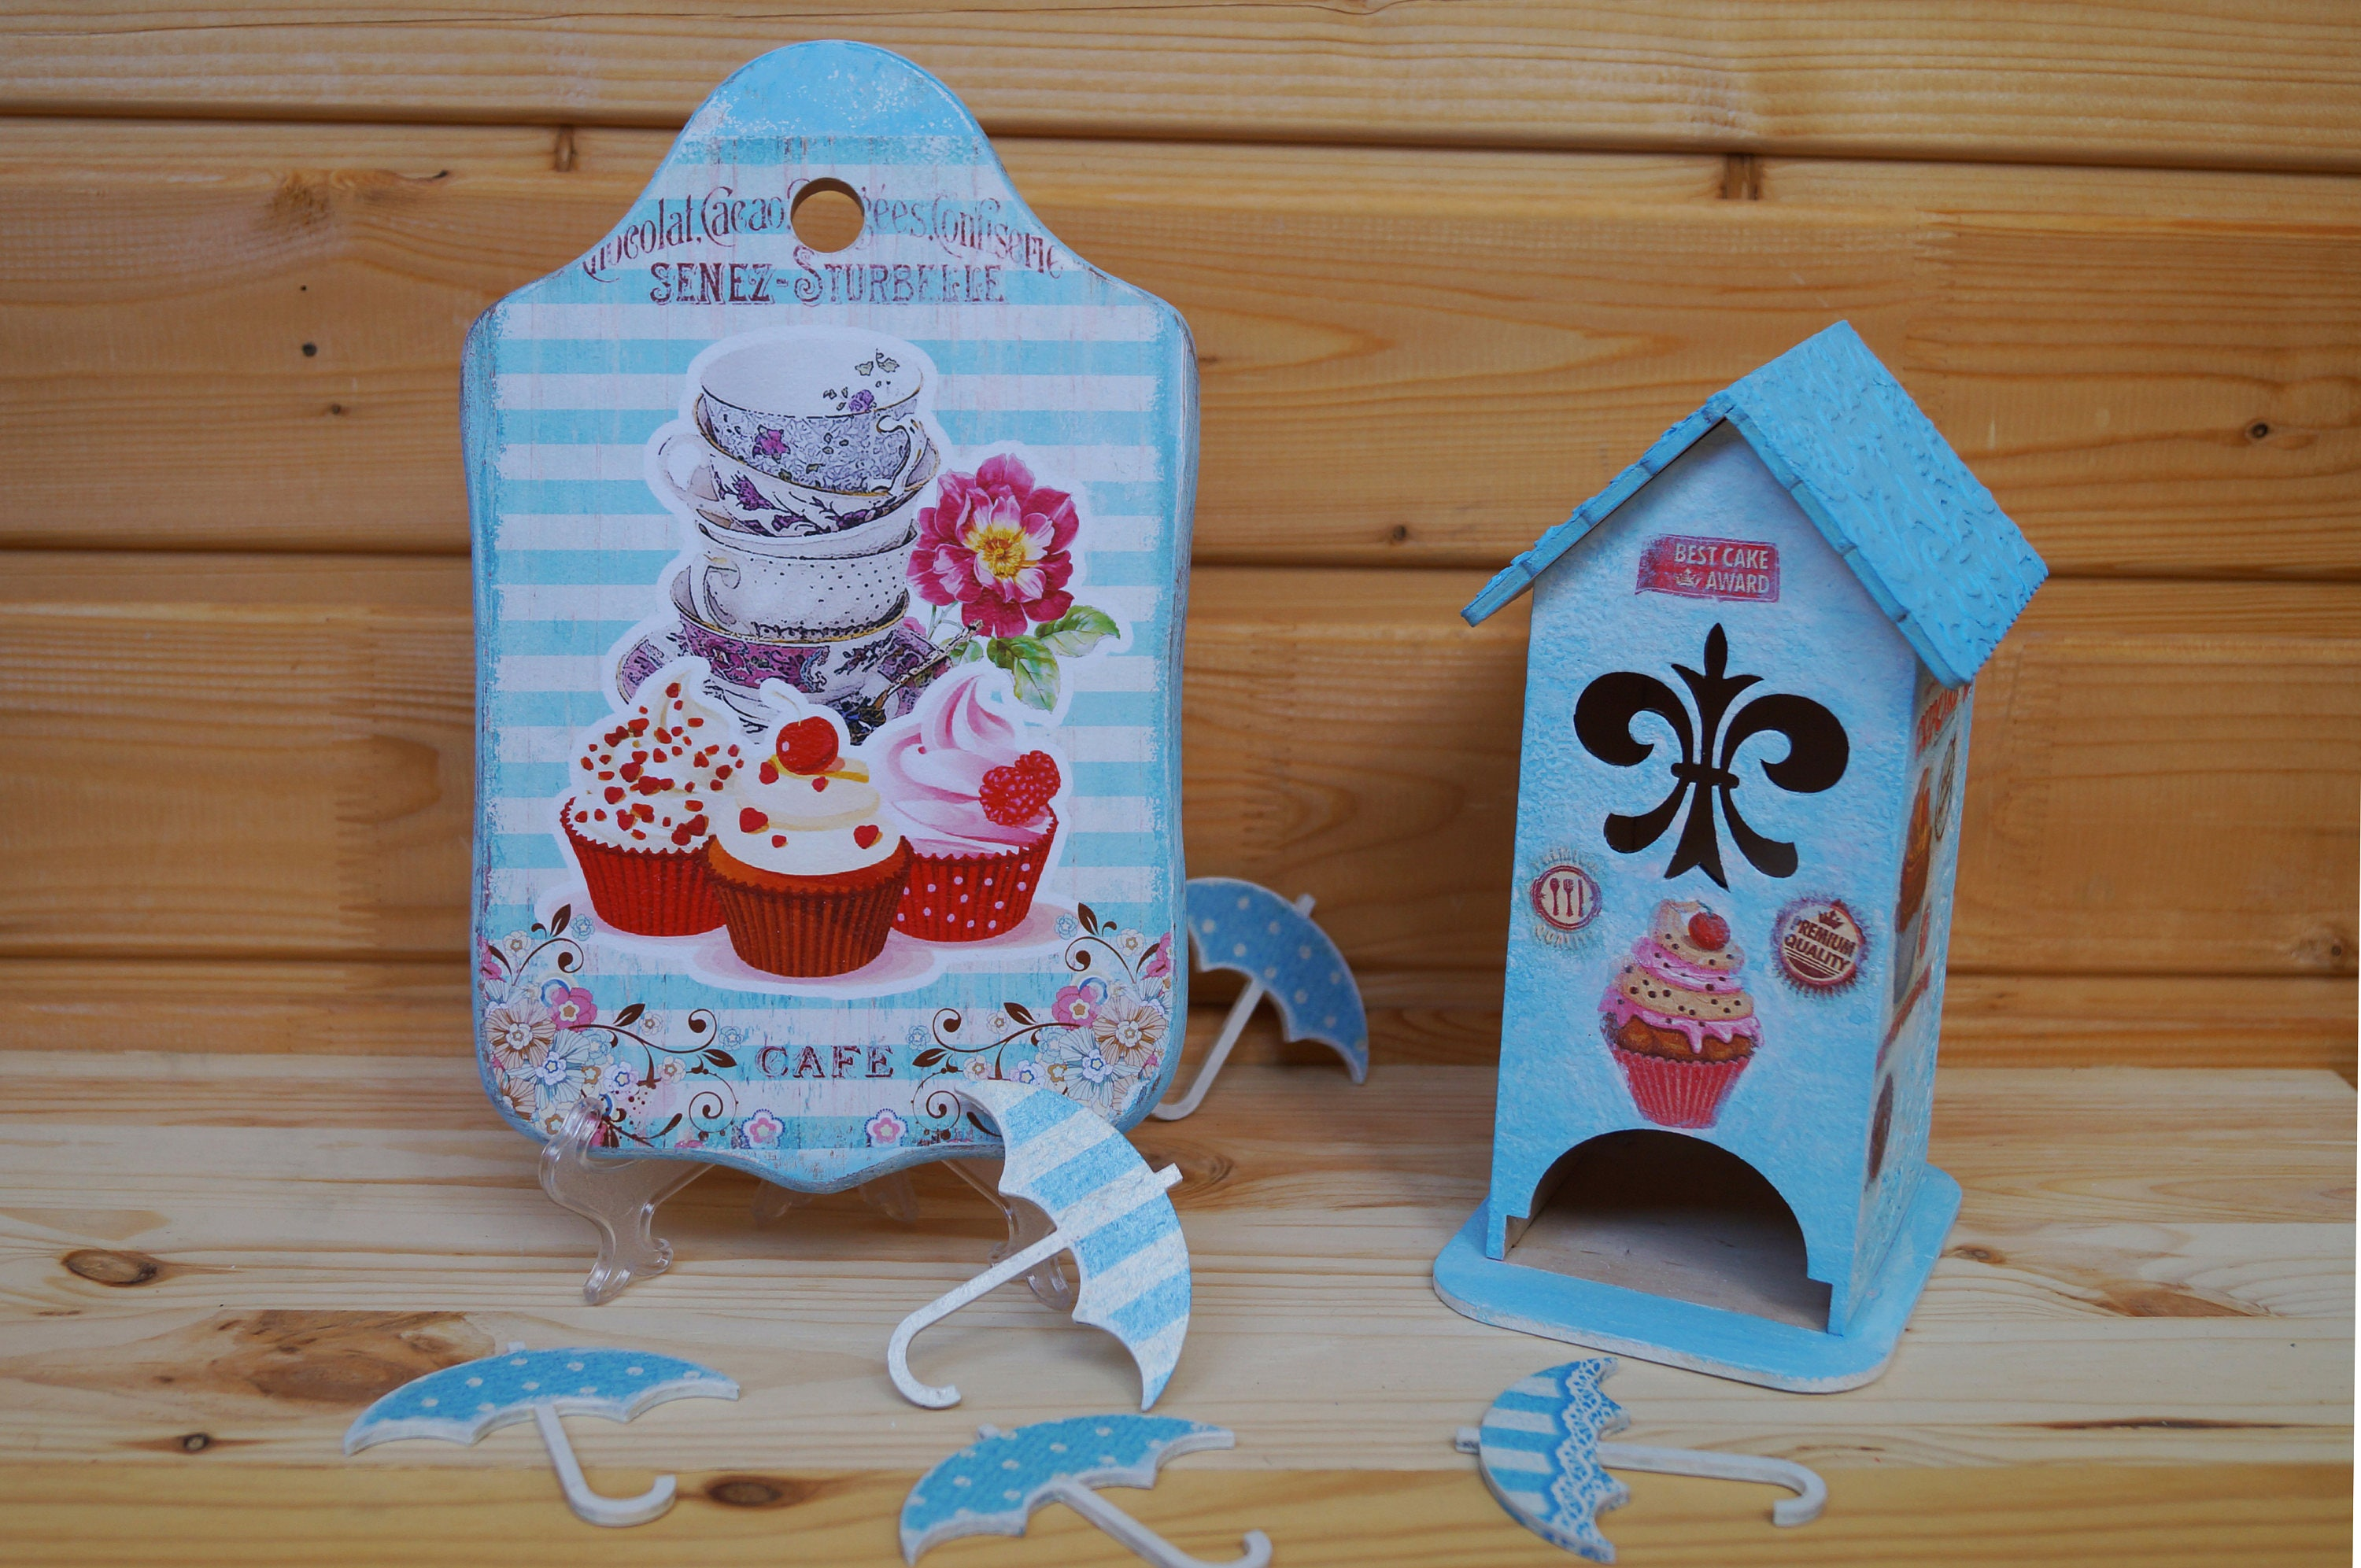 Cute kitchen set - Wooden Cutting board and Tea house Cupcake decor ...